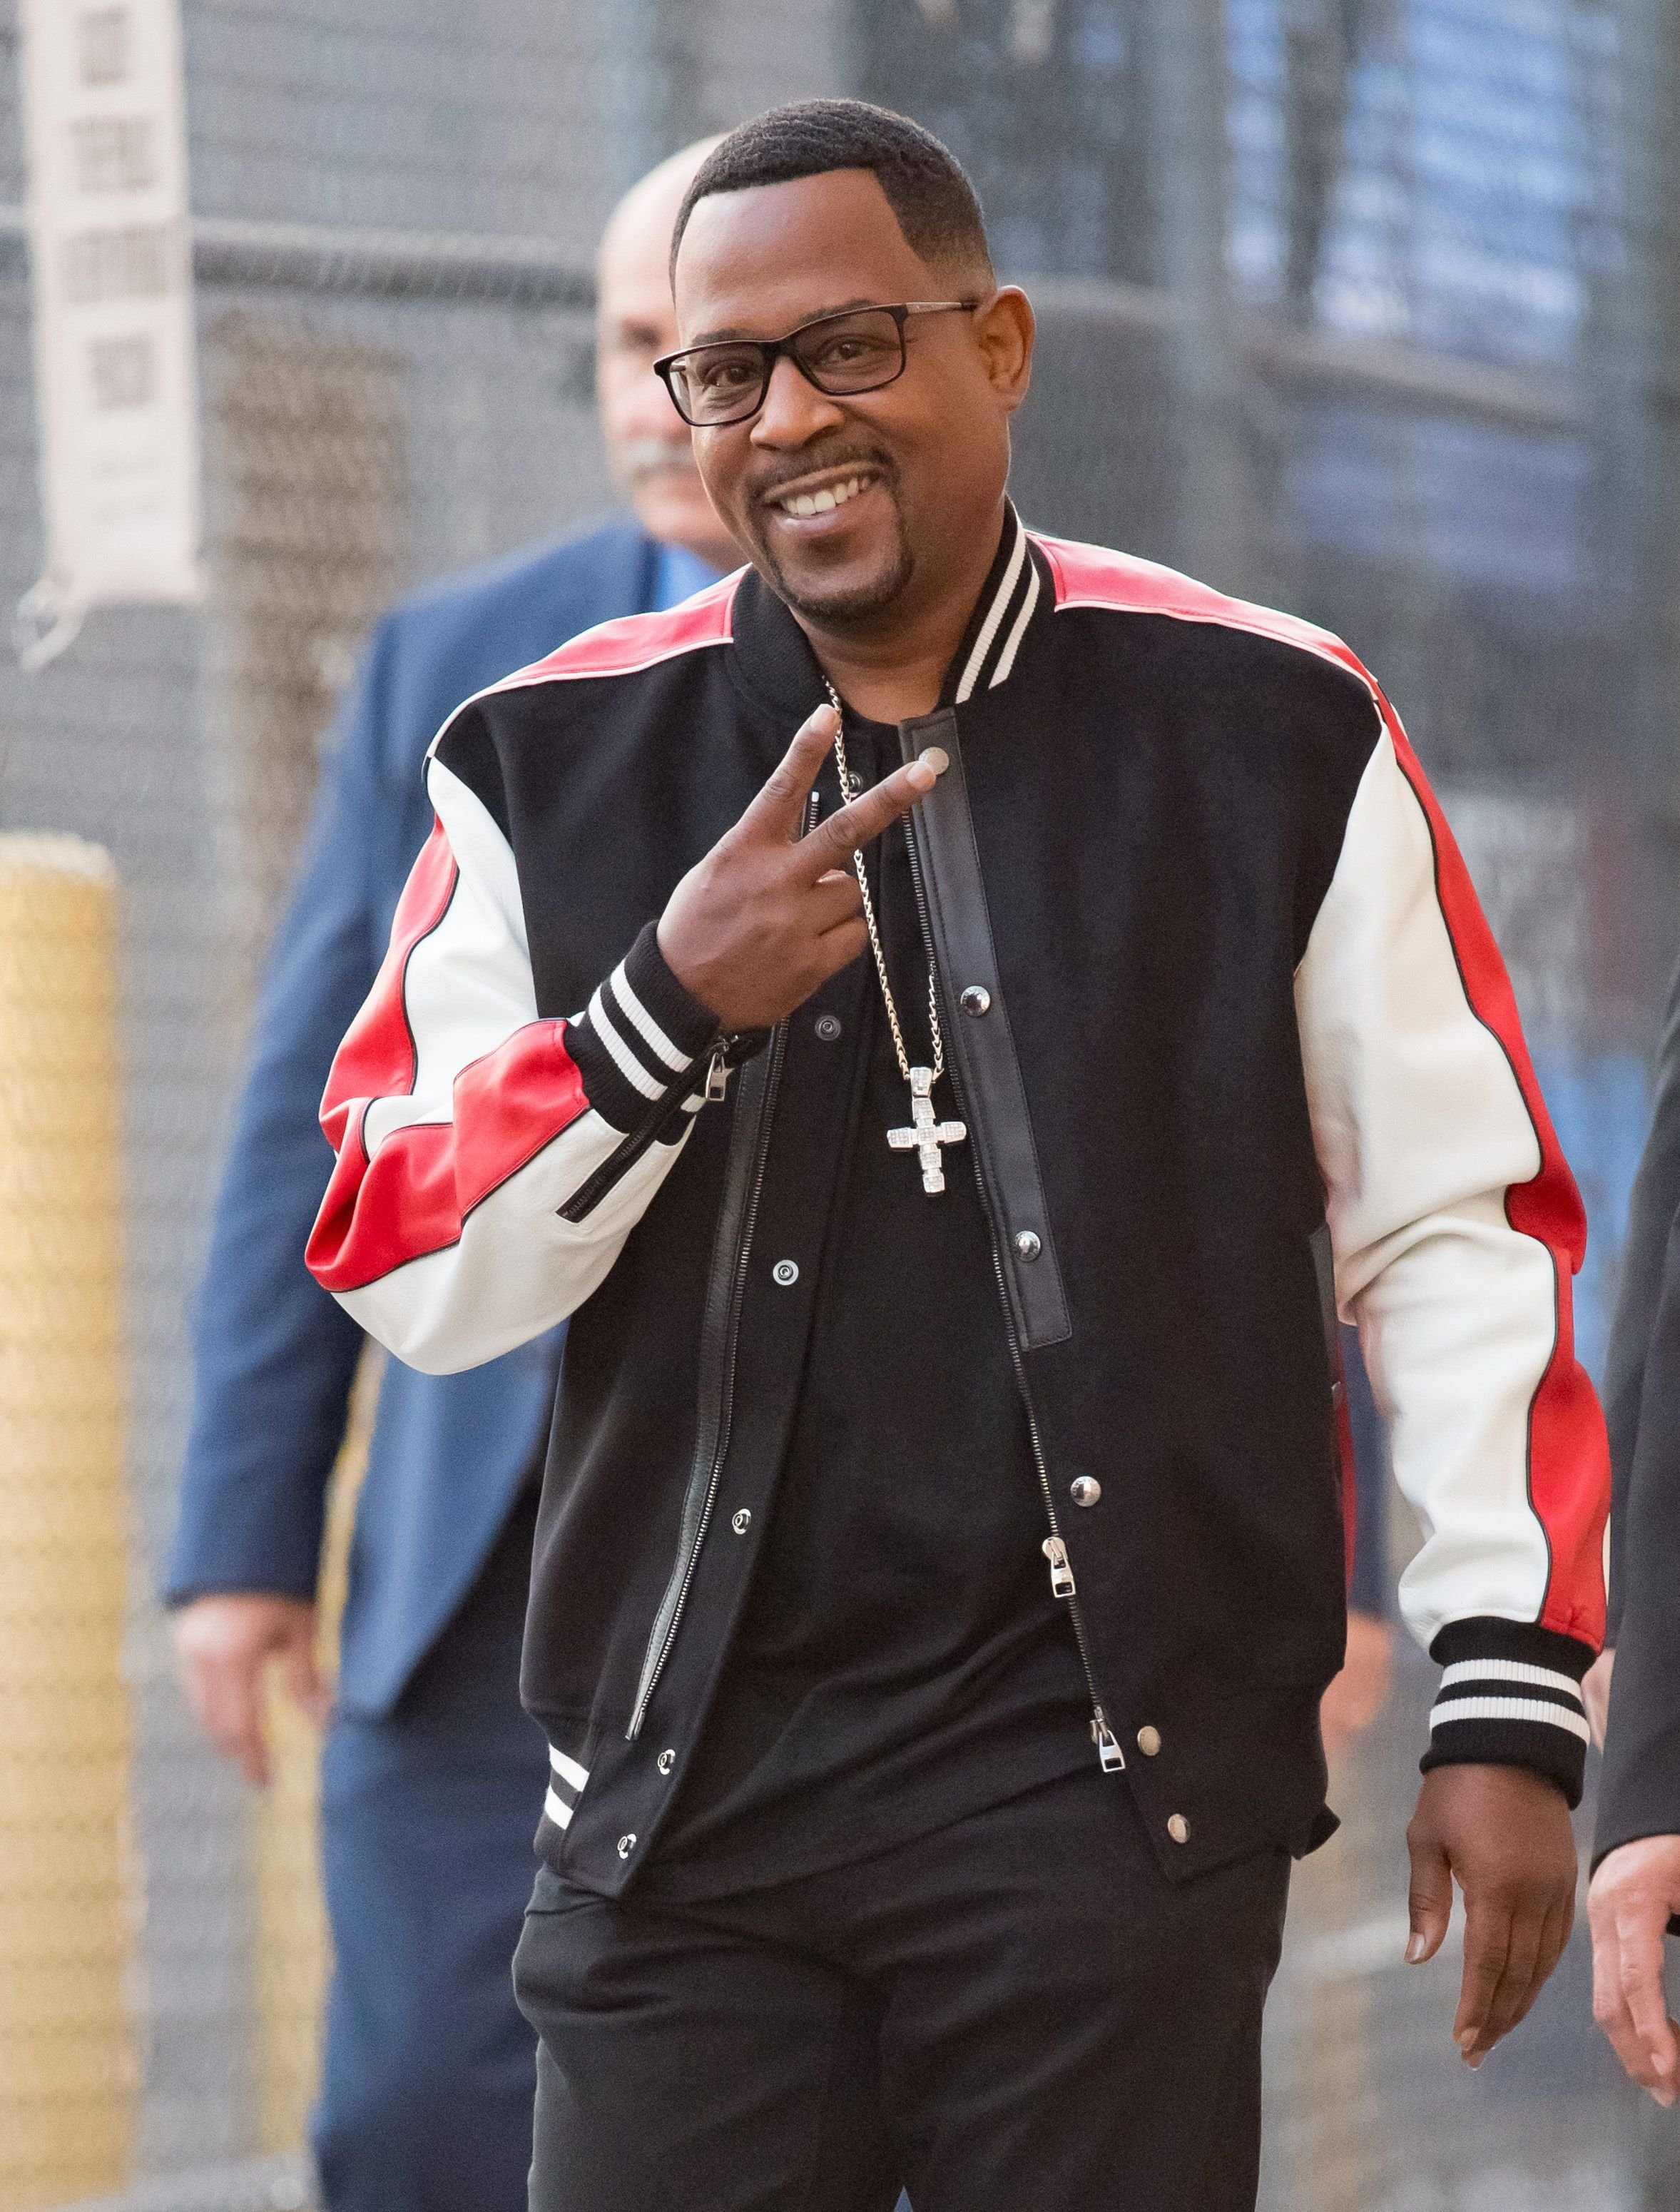 """Martin Lawrence at """"Jimmy Kimmel Live"""" in Los Angeles on October 25, 2018. 